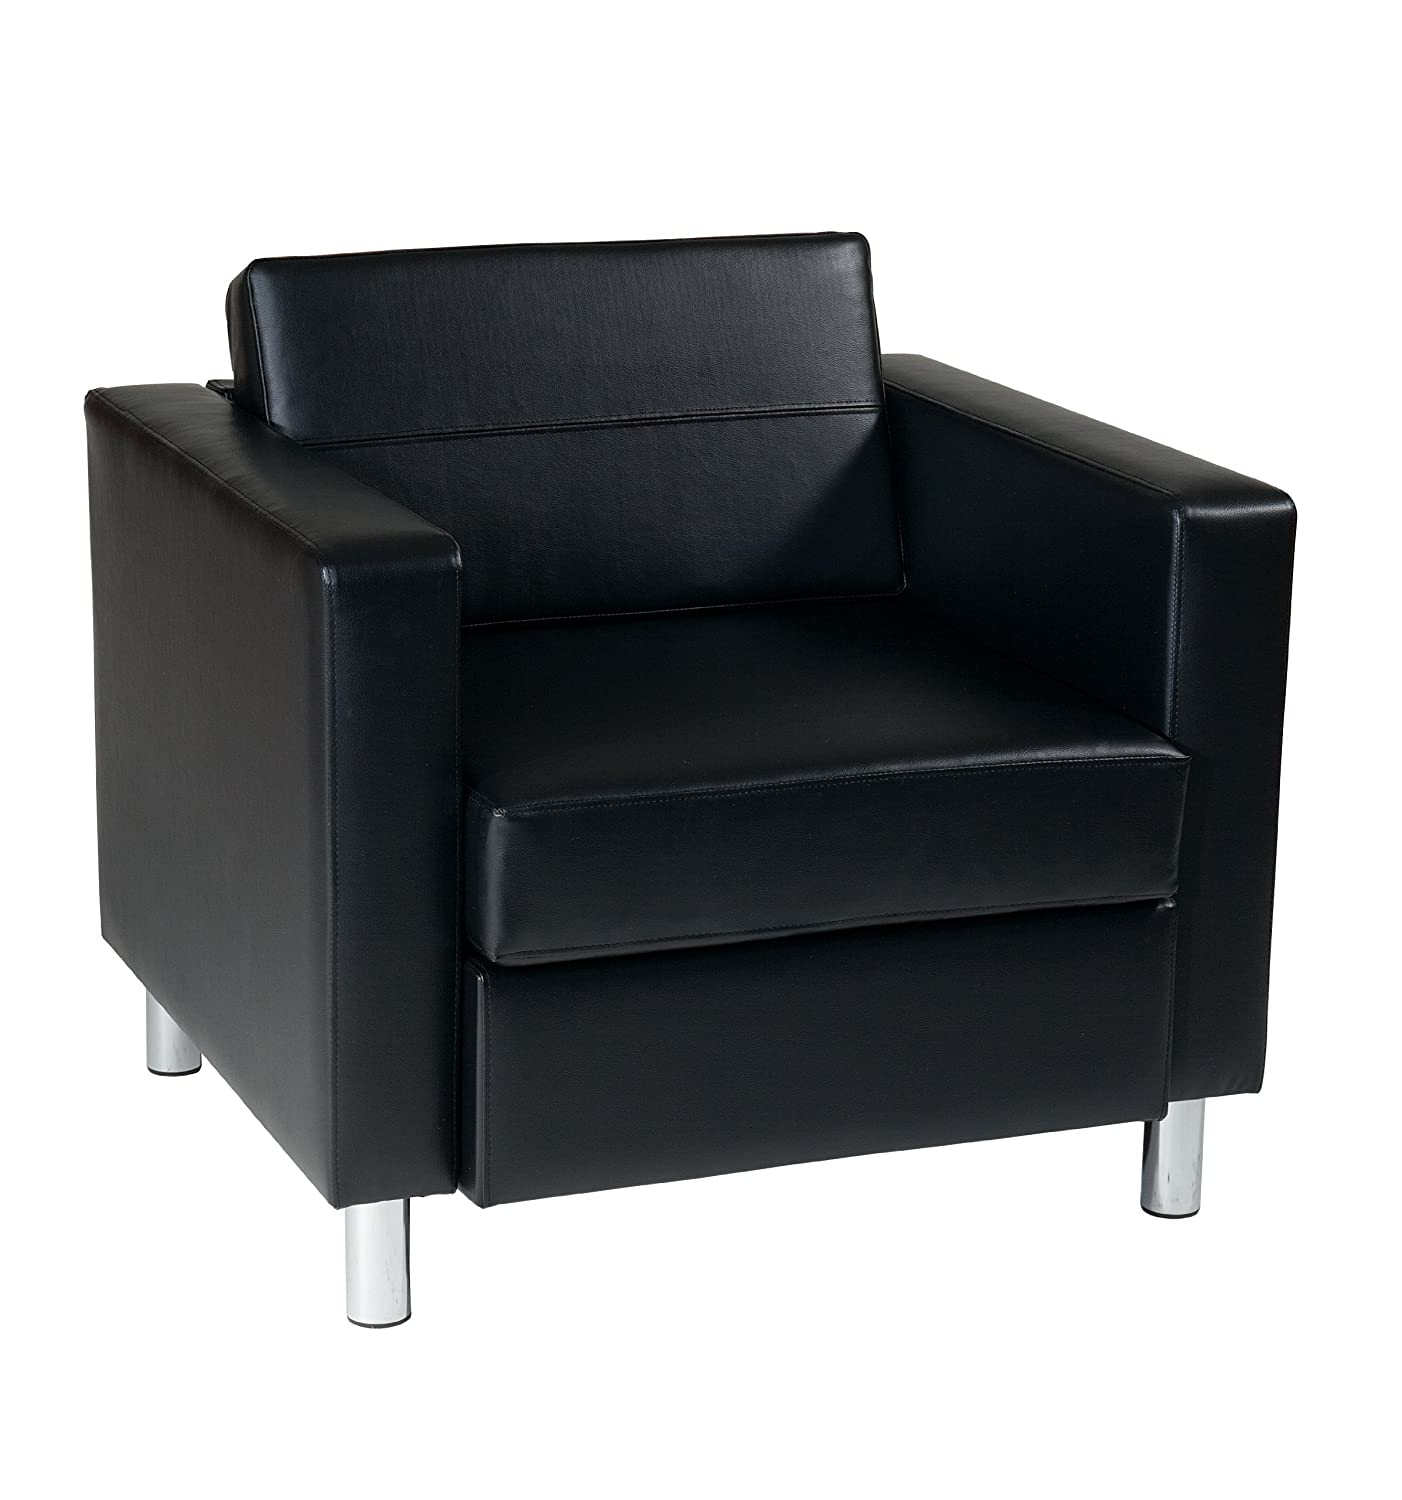 OSP Home Furnishings AVE SIX Pacific Vinyl Arm Chair with Spring Seats and Silver Metal Legs, Black